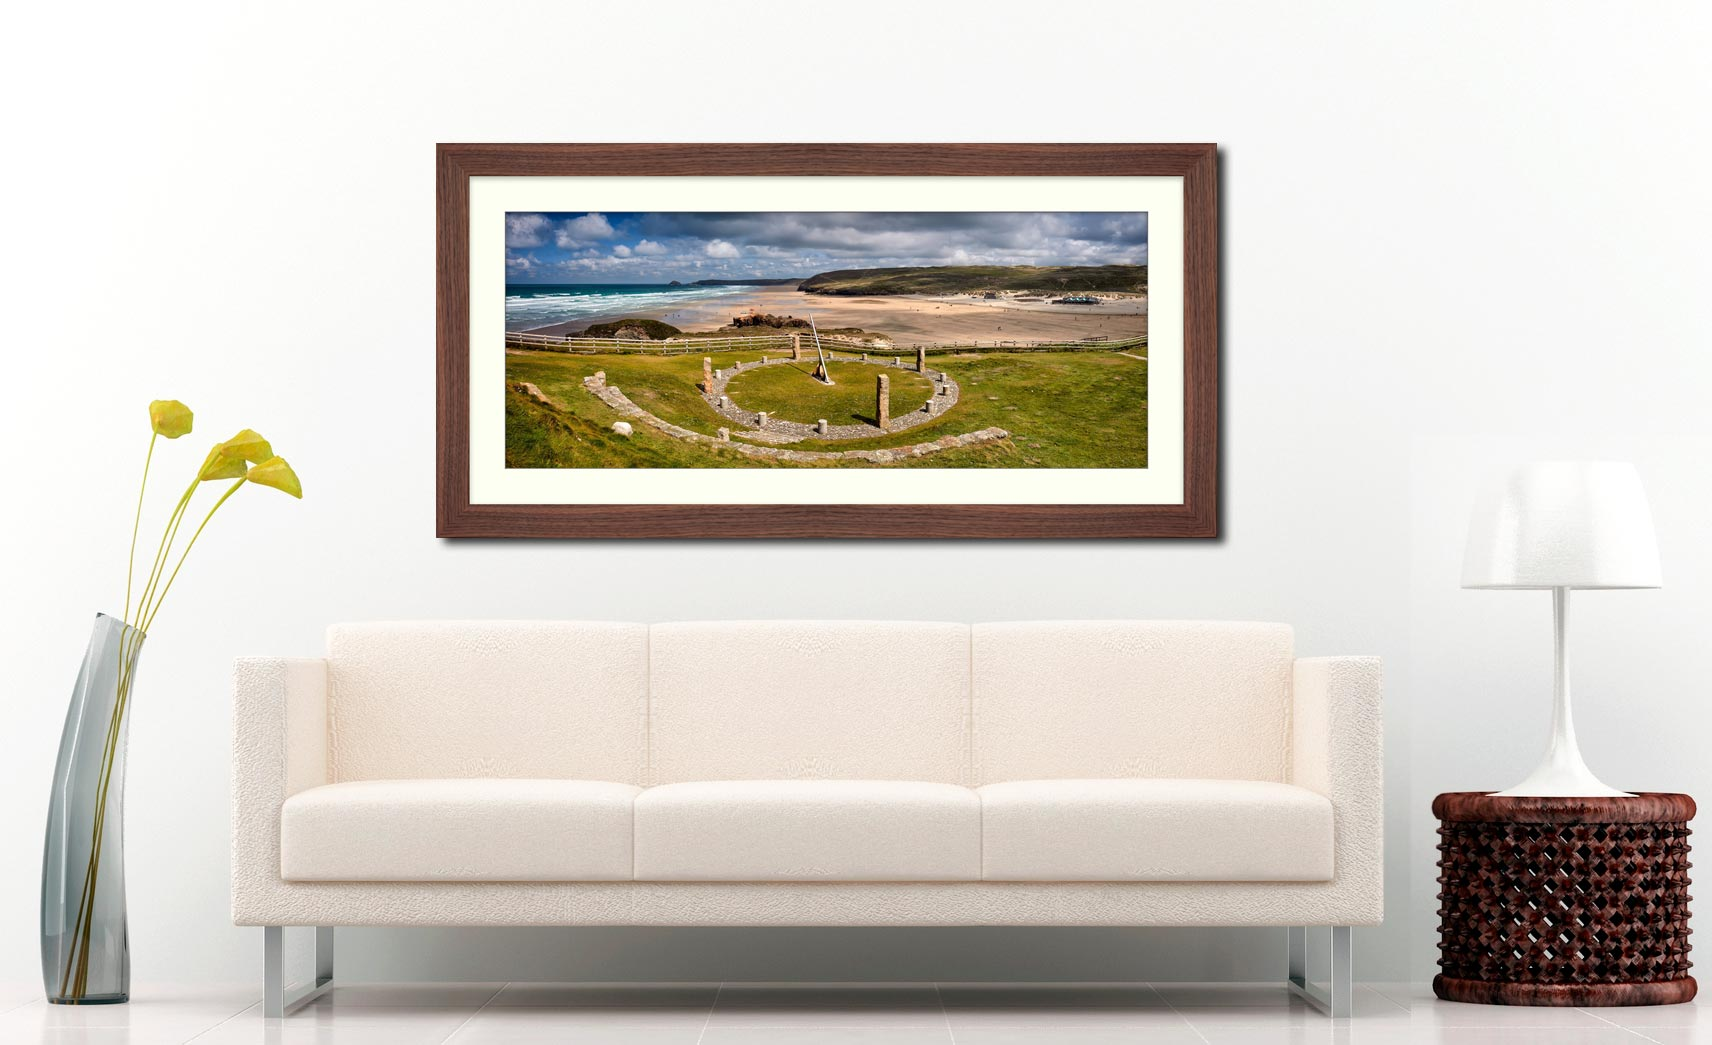 Perranporth Sundial and Beach - Framed Print with Mount on Wall